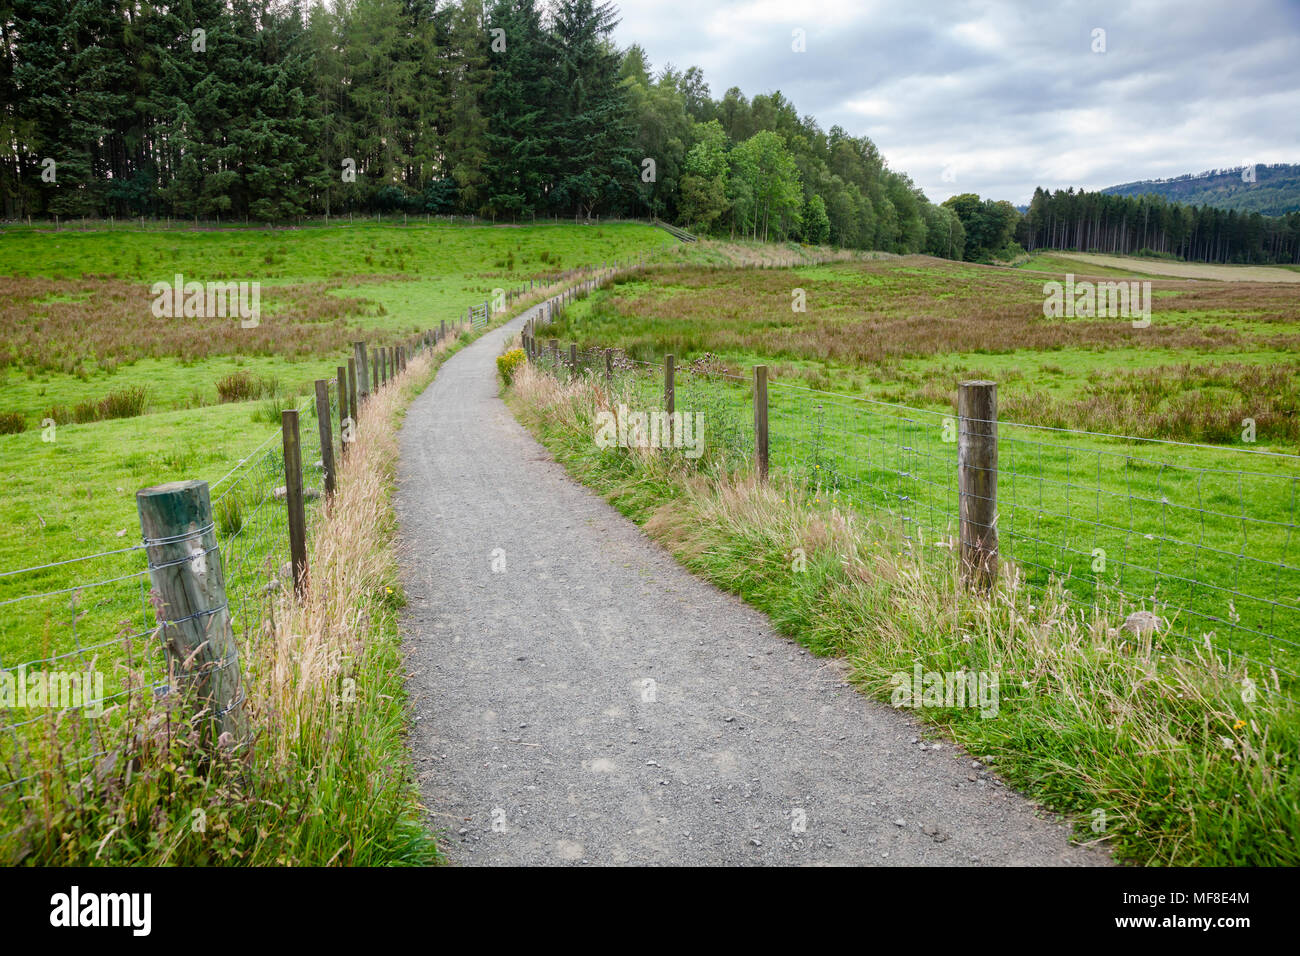 Summer rural landscape with public rights of way brideway or footpath going along pasture in Scotland UK - Stock Image